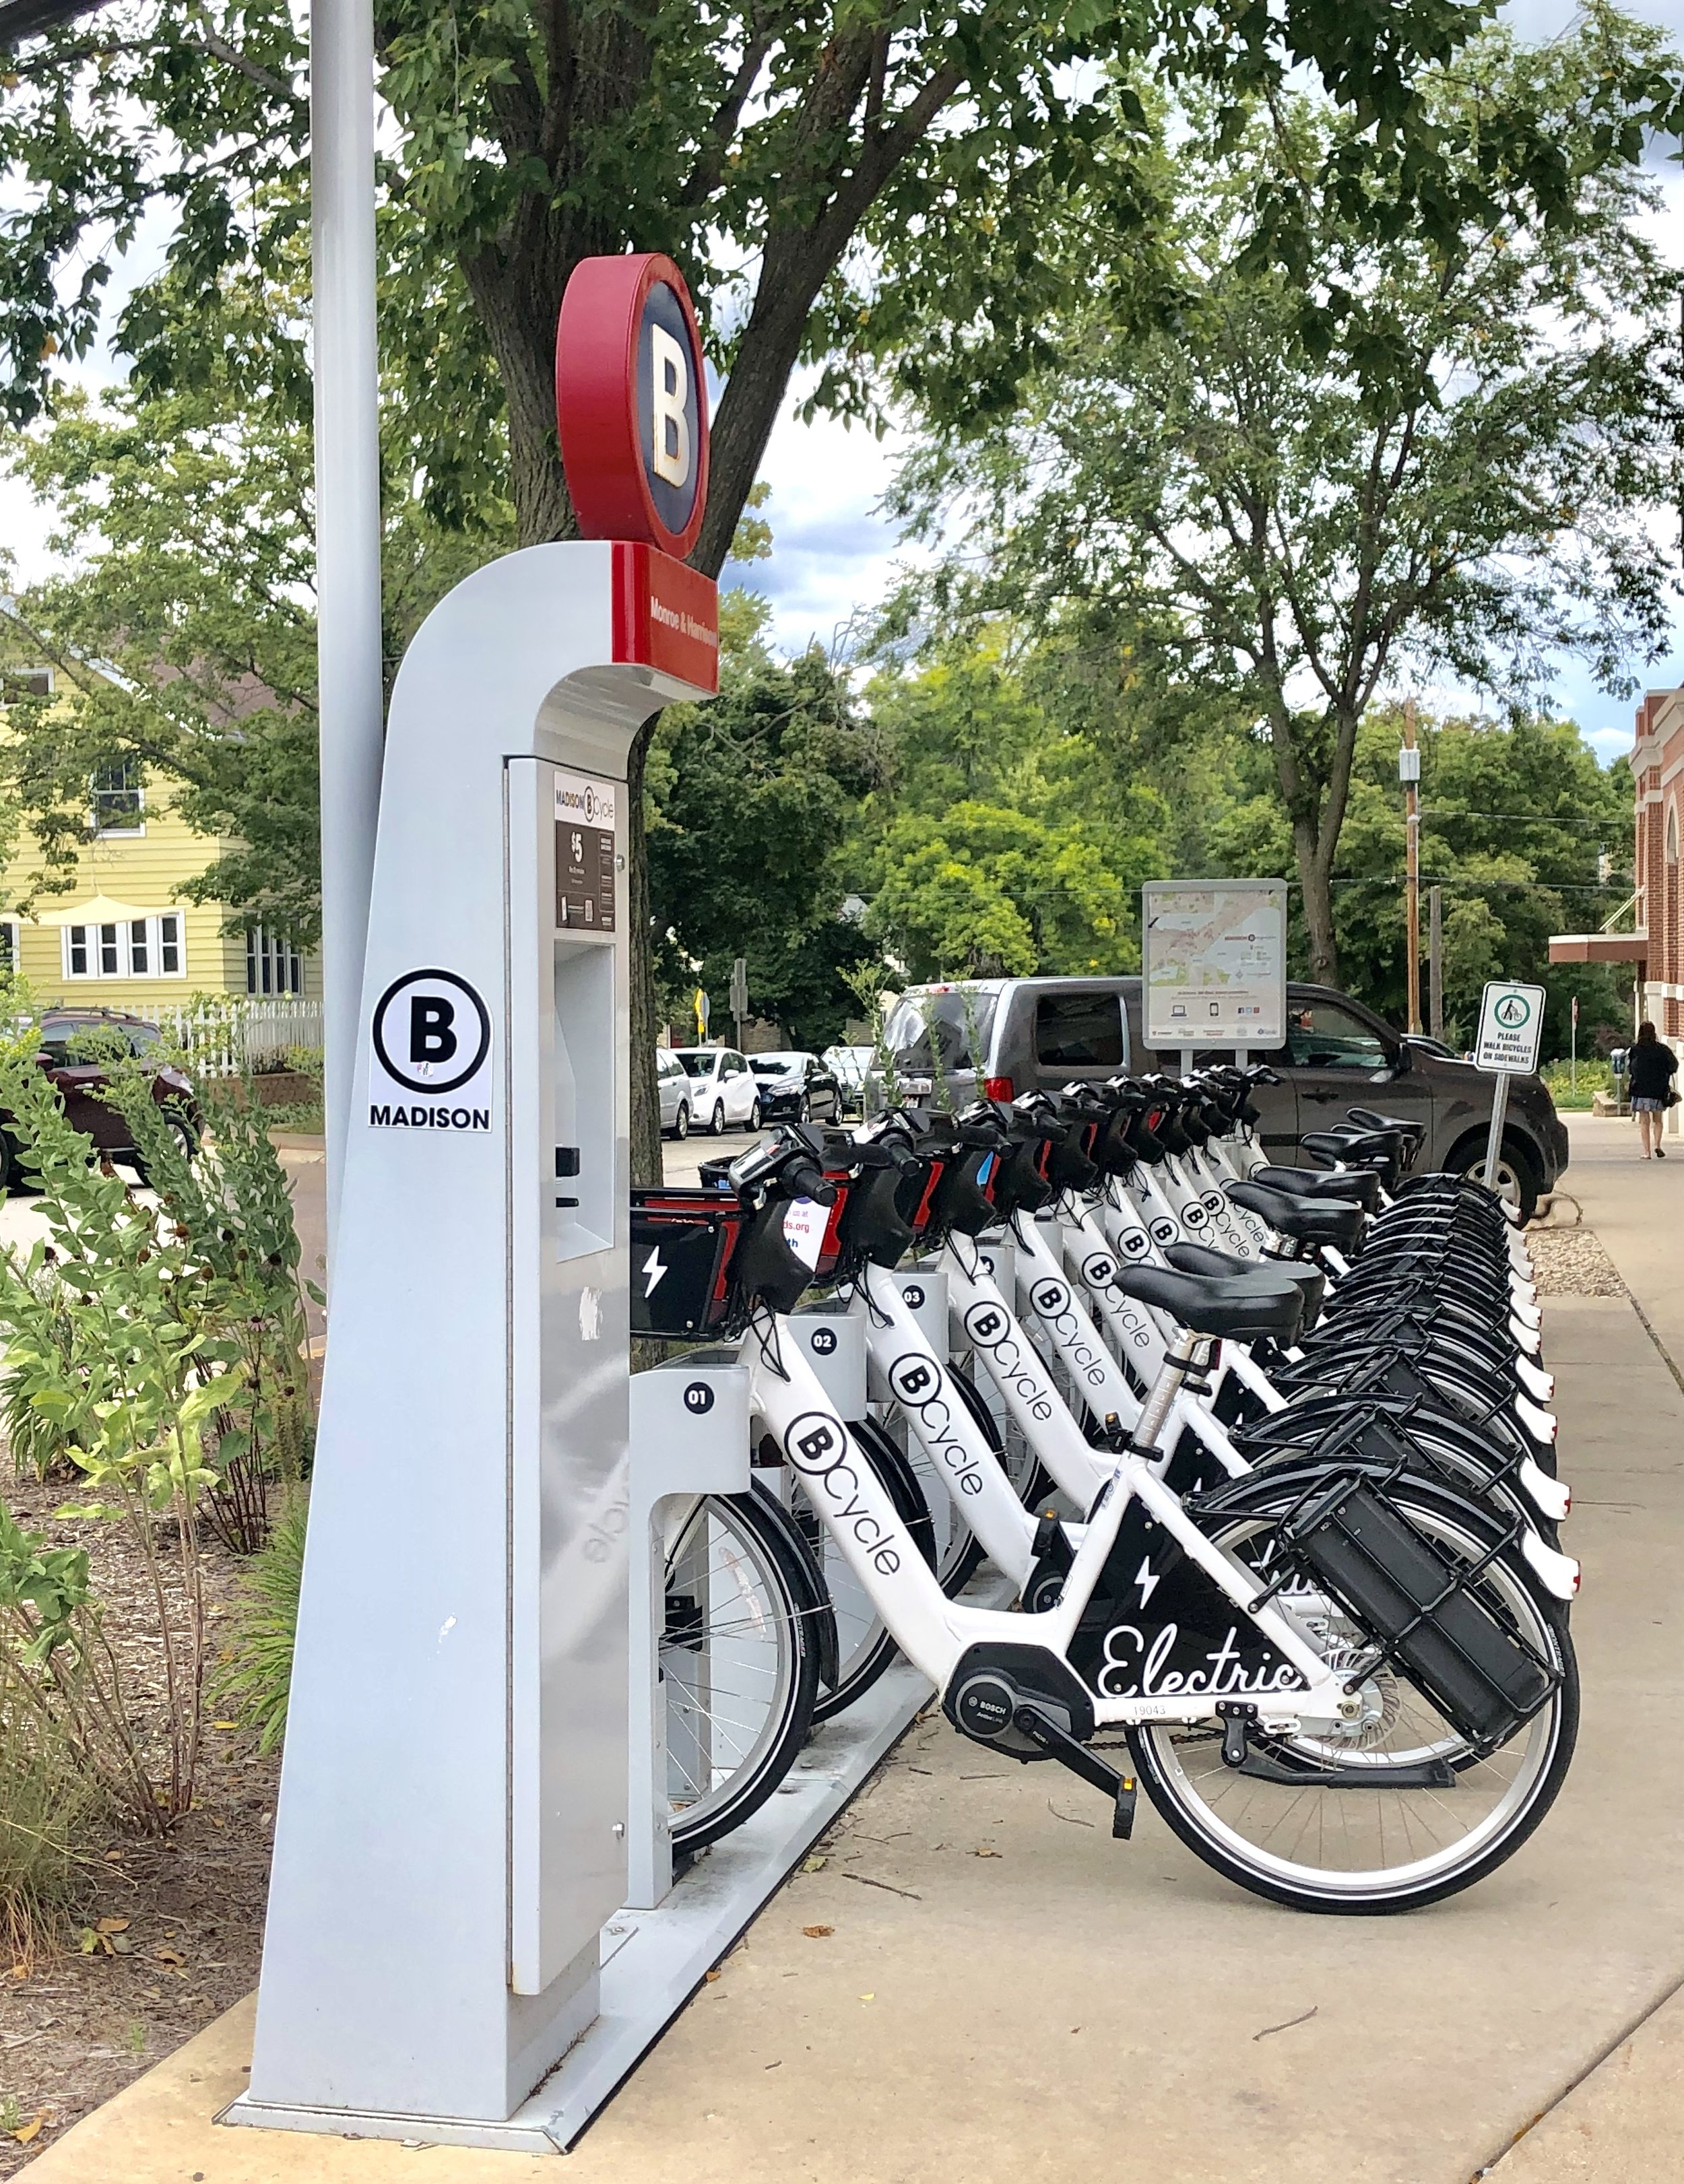 Hive is conveniently located just one block off the bike path, and we also have a Bcycle station right across the street.